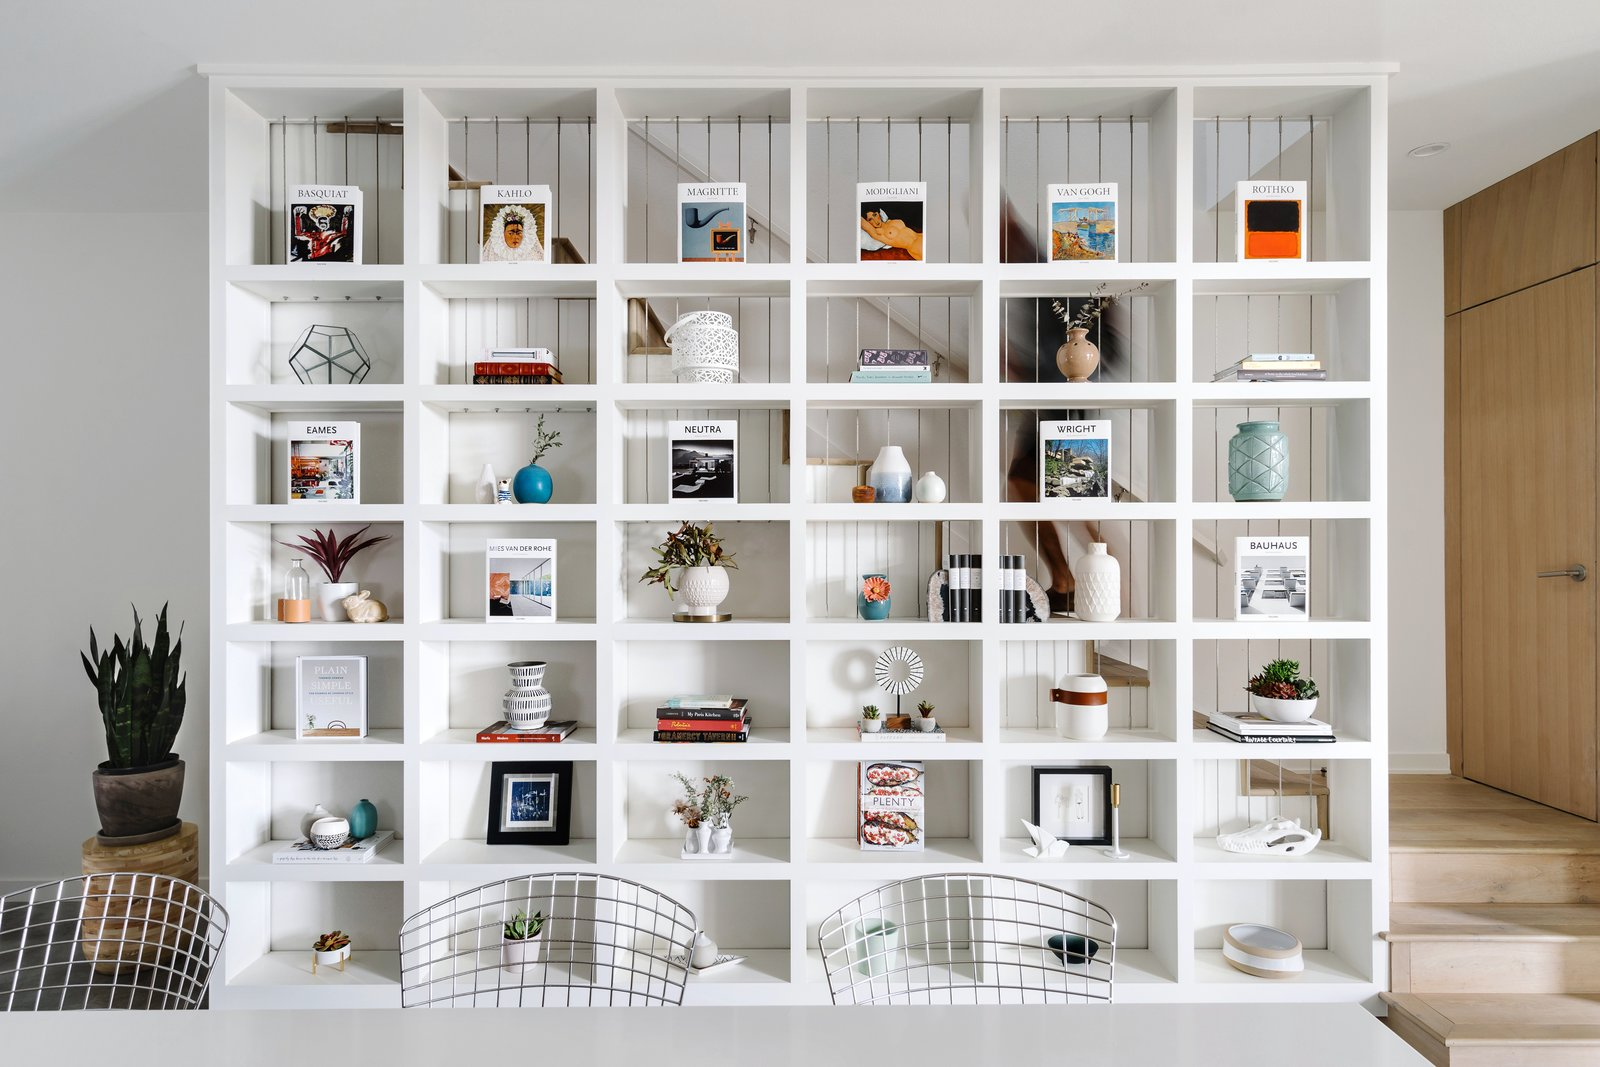 The large built-in shelving unit acts as a divider between the dining space and the staircase. Tagged: Storage Room and Shelves Storage Type.  Photo 3 of 7 in St. Barts-Inspired Accents Create Modern Tranquility in an Austin Tilley Row Home